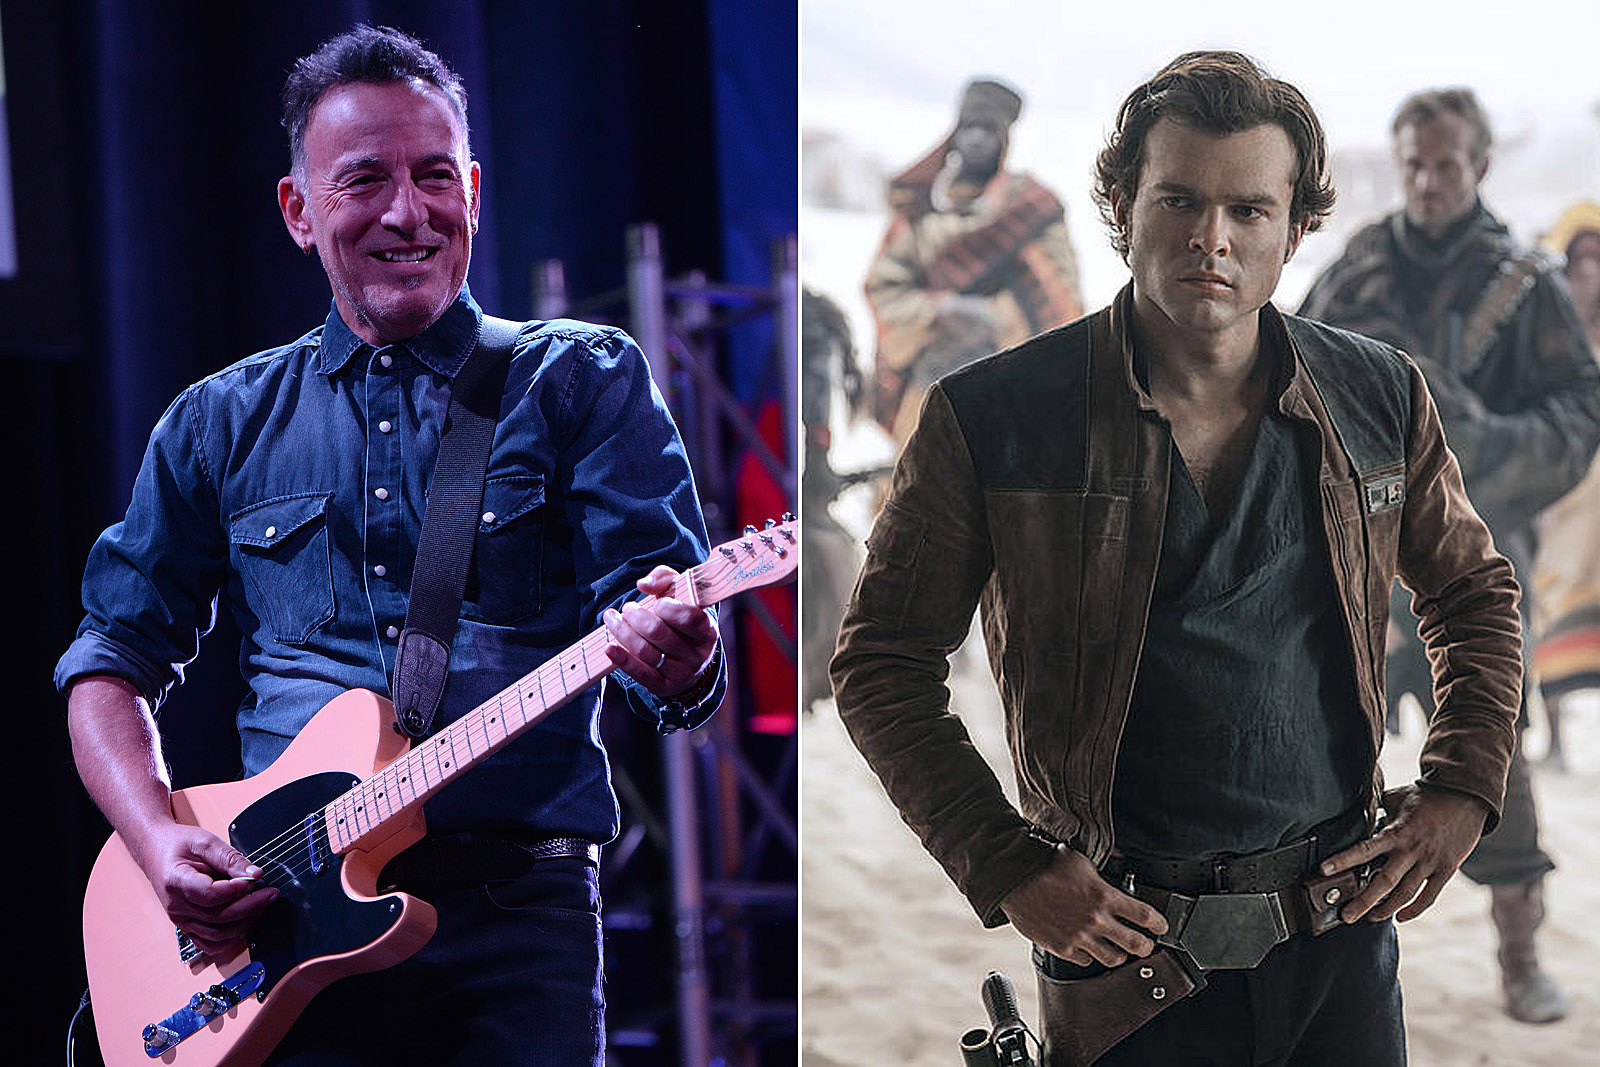 Bruce Springsteen Inspired a Plot Point in 'Solo: A Star Wars Story'